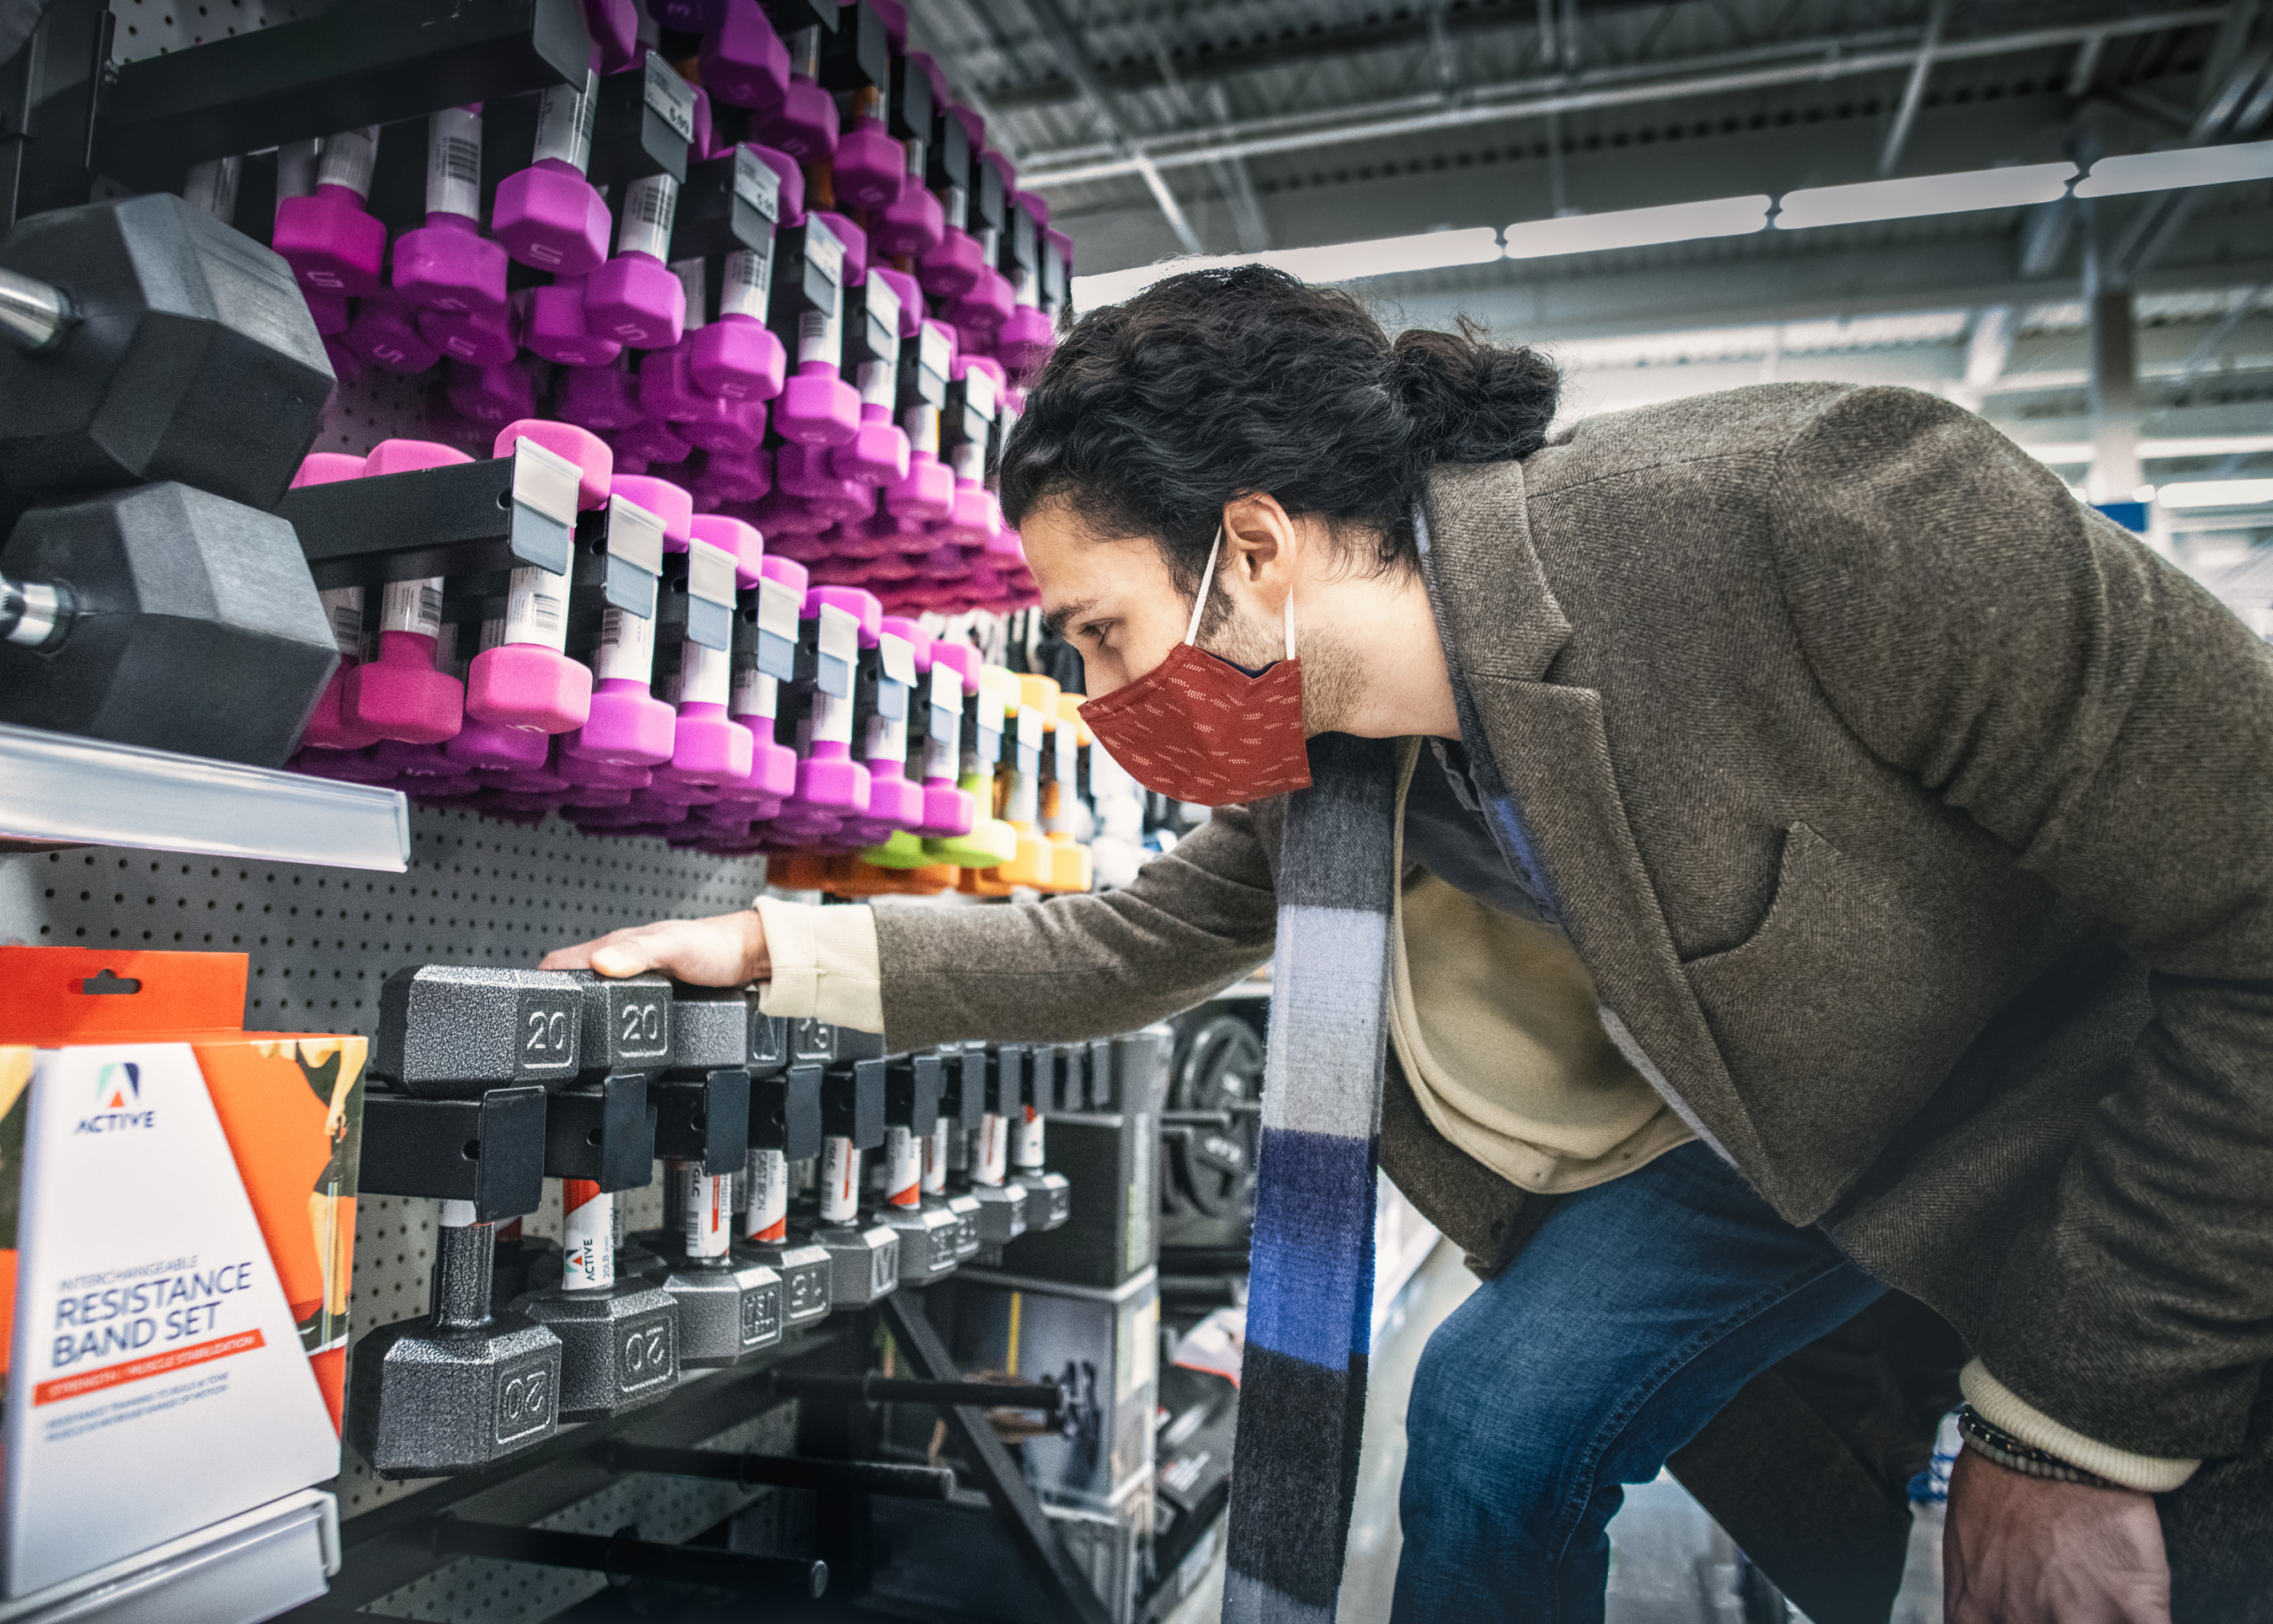 Midwestern retailer Meijer created a Michigan-made solution to bolster supply during the pandemic. By partnering with local businesses, the retailer now offers 10-, 15- , 20- and 25-pound versions to address continuing demand as shoppers add to their home gyms.